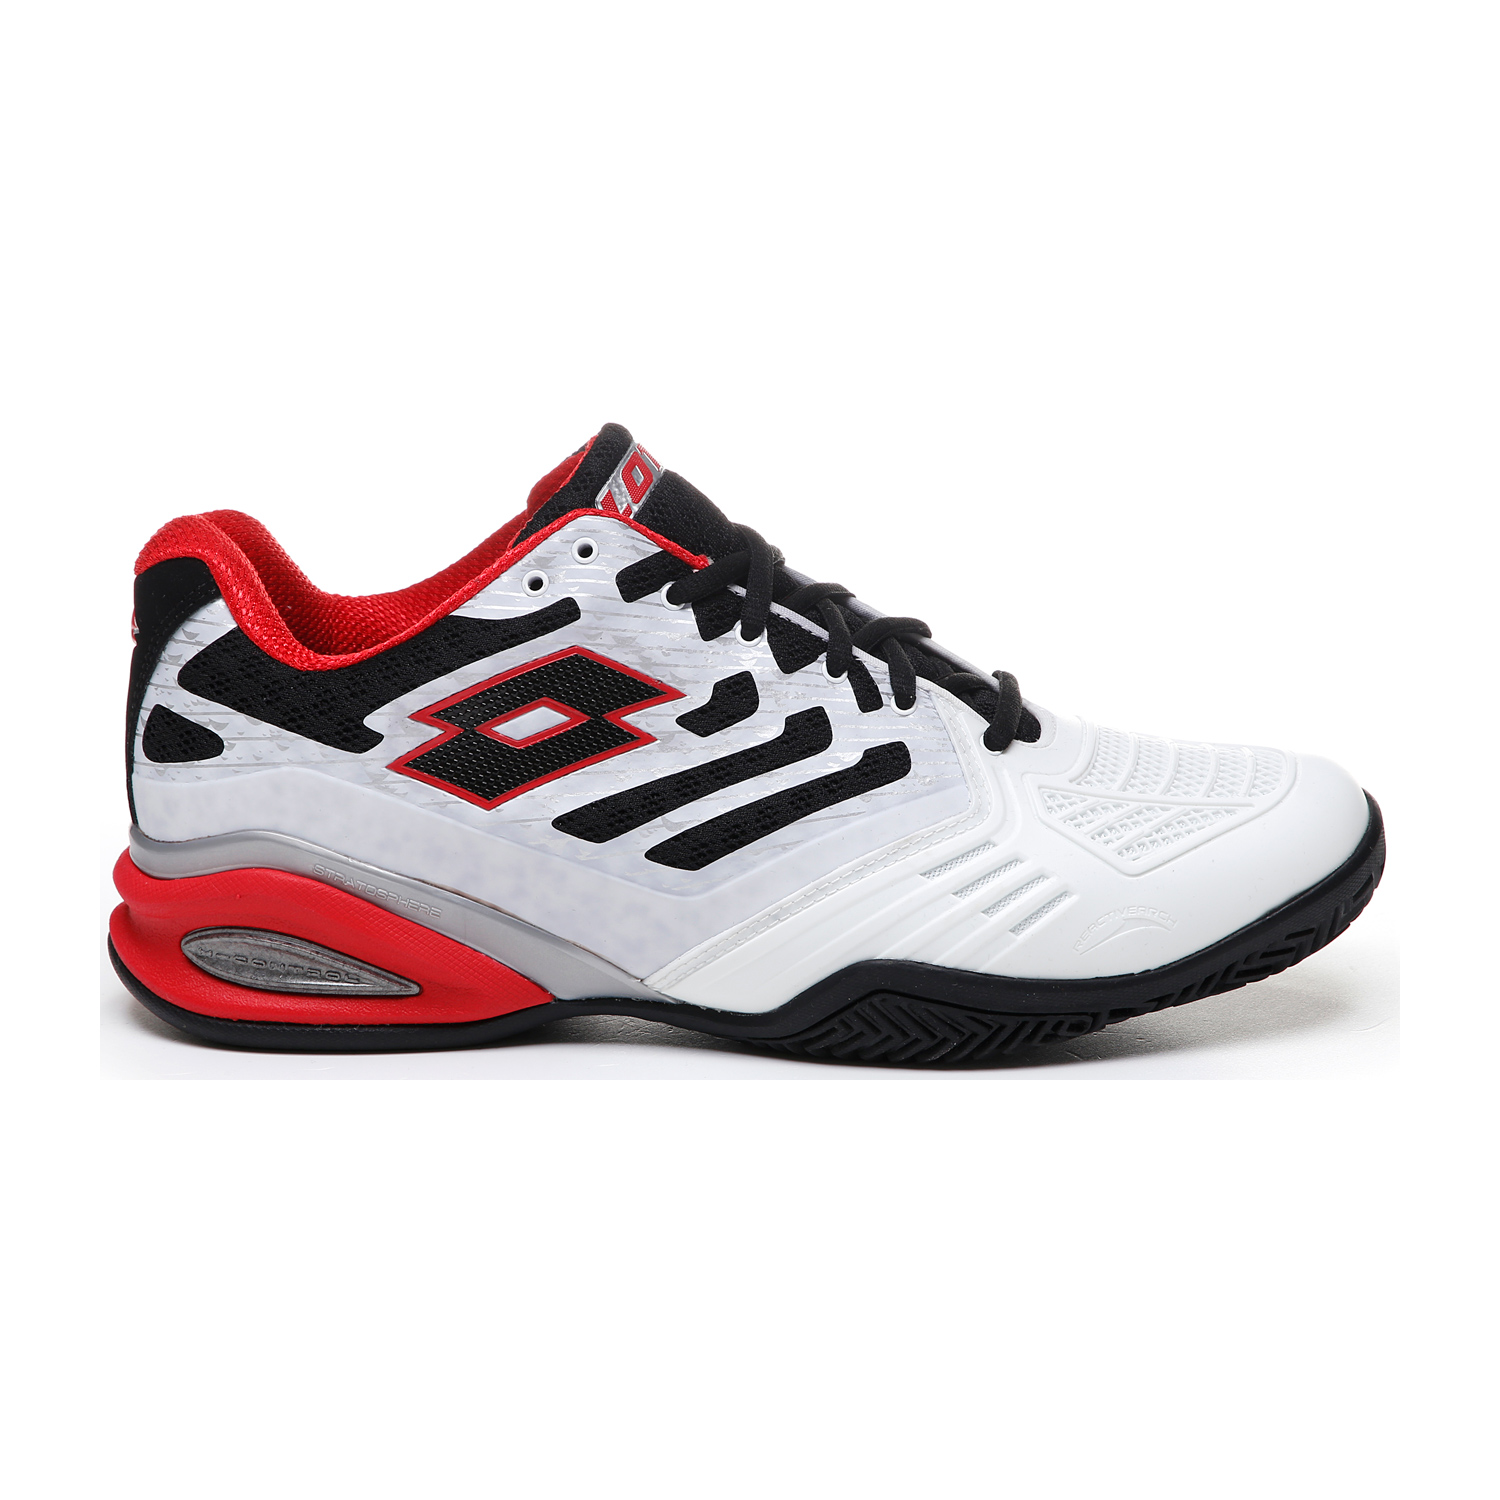 Lotto Sport Italia Footwear Clothing And Accessories For Sport